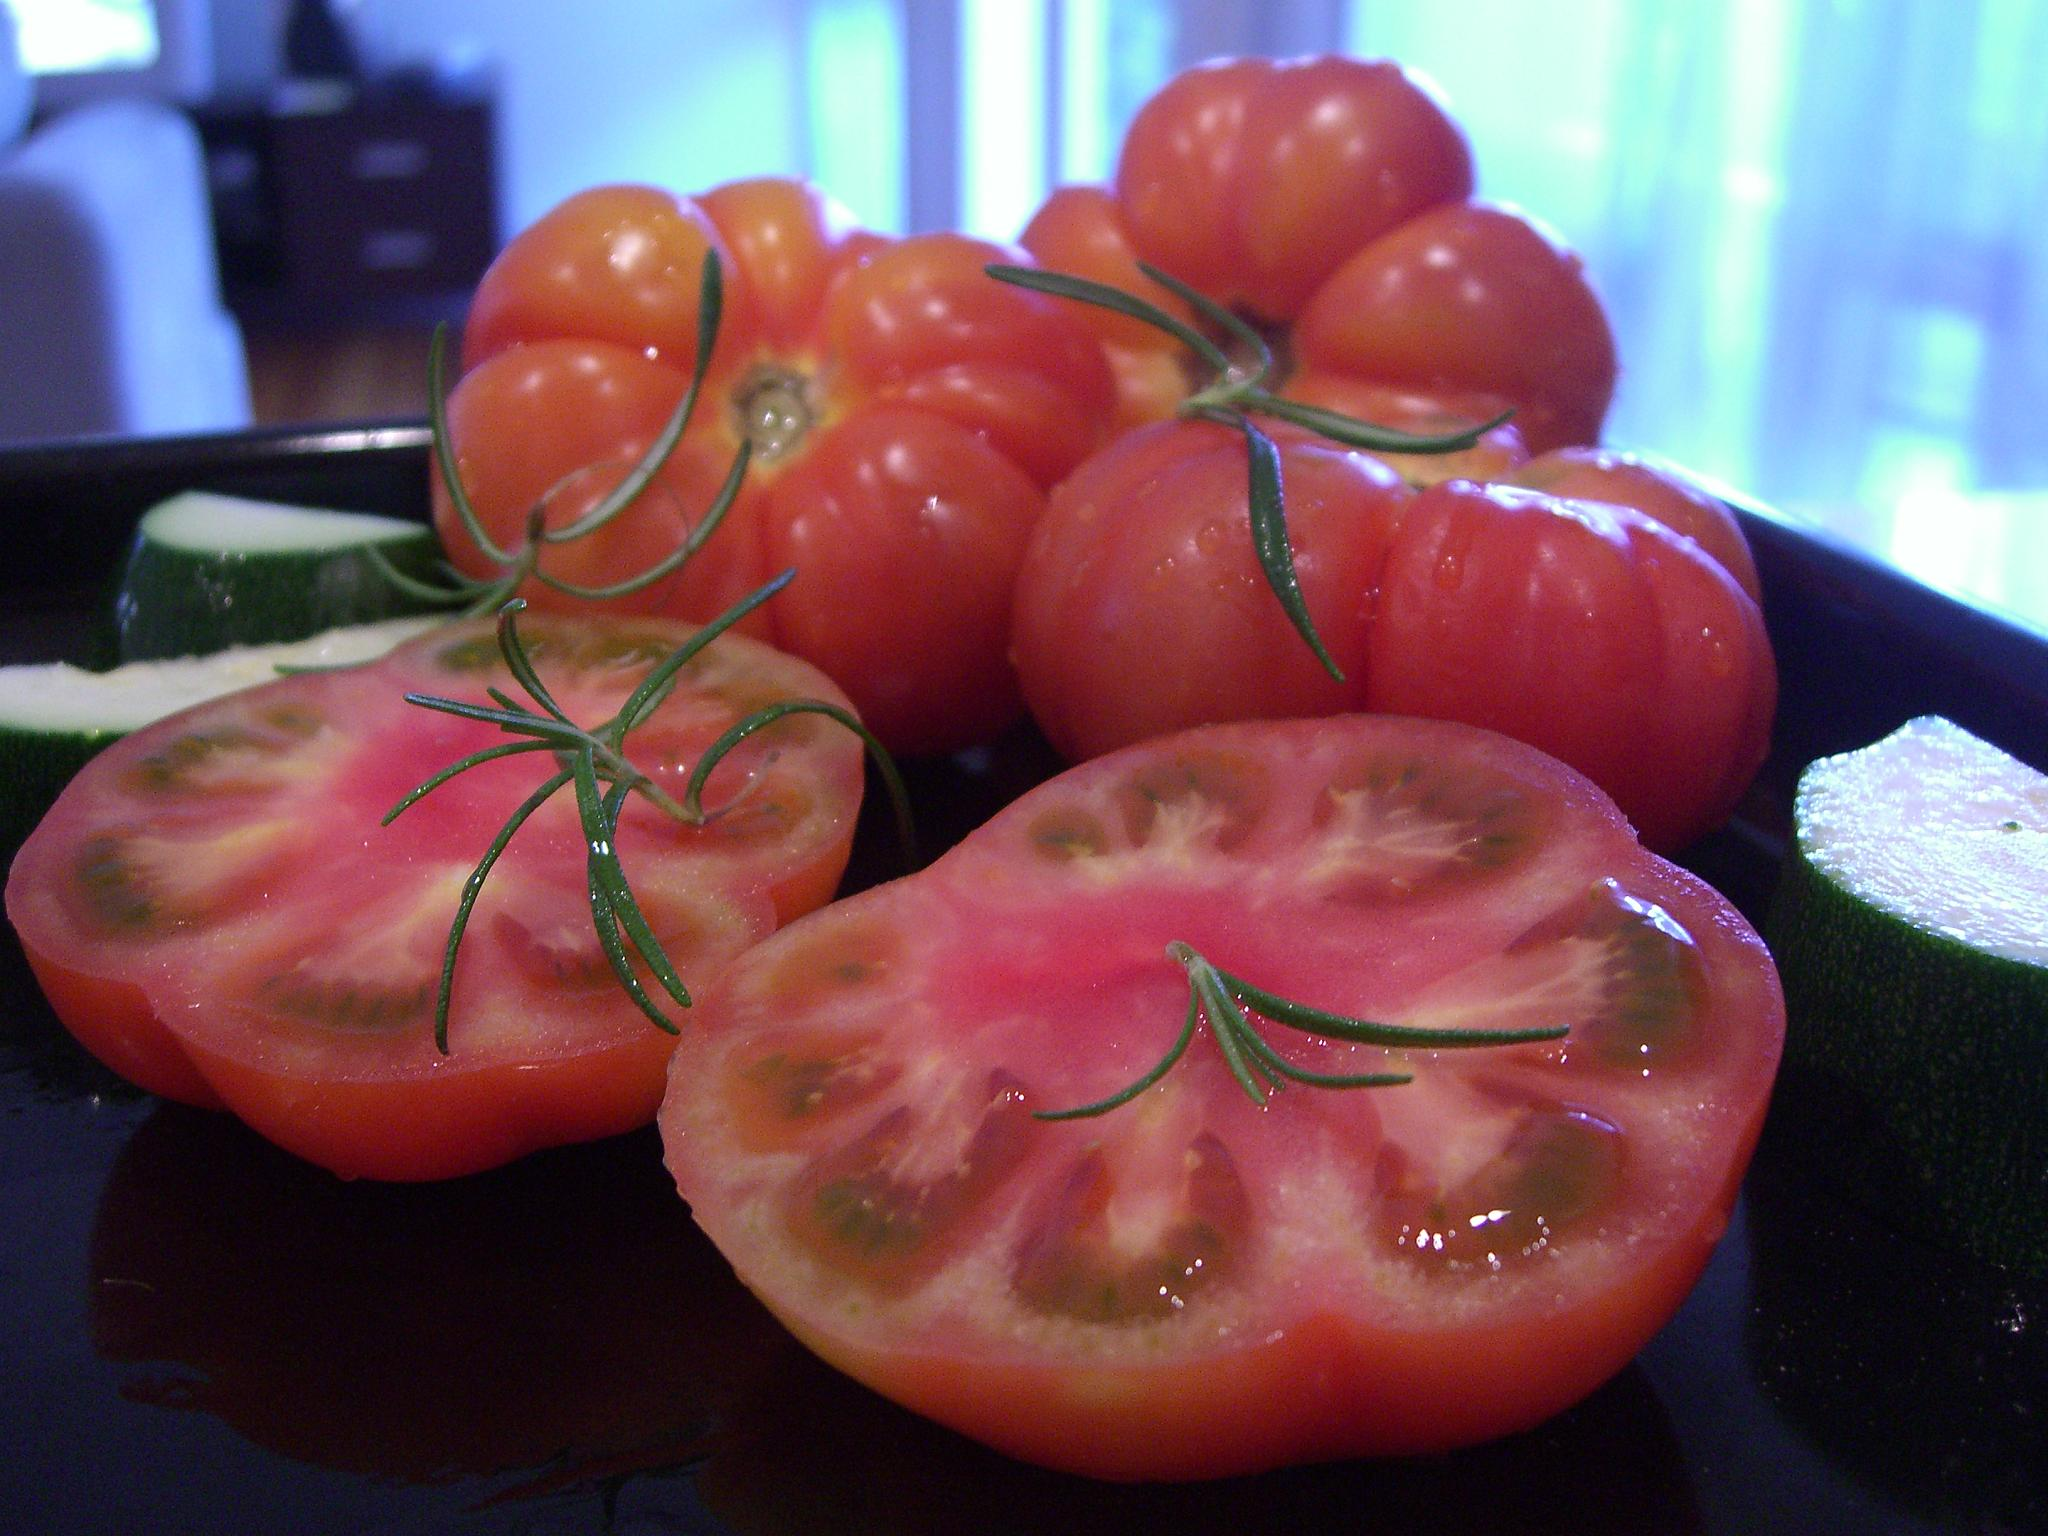 http://fr.academic.ru/pictures/frwiki/84/Tomates_Marmande.jpg